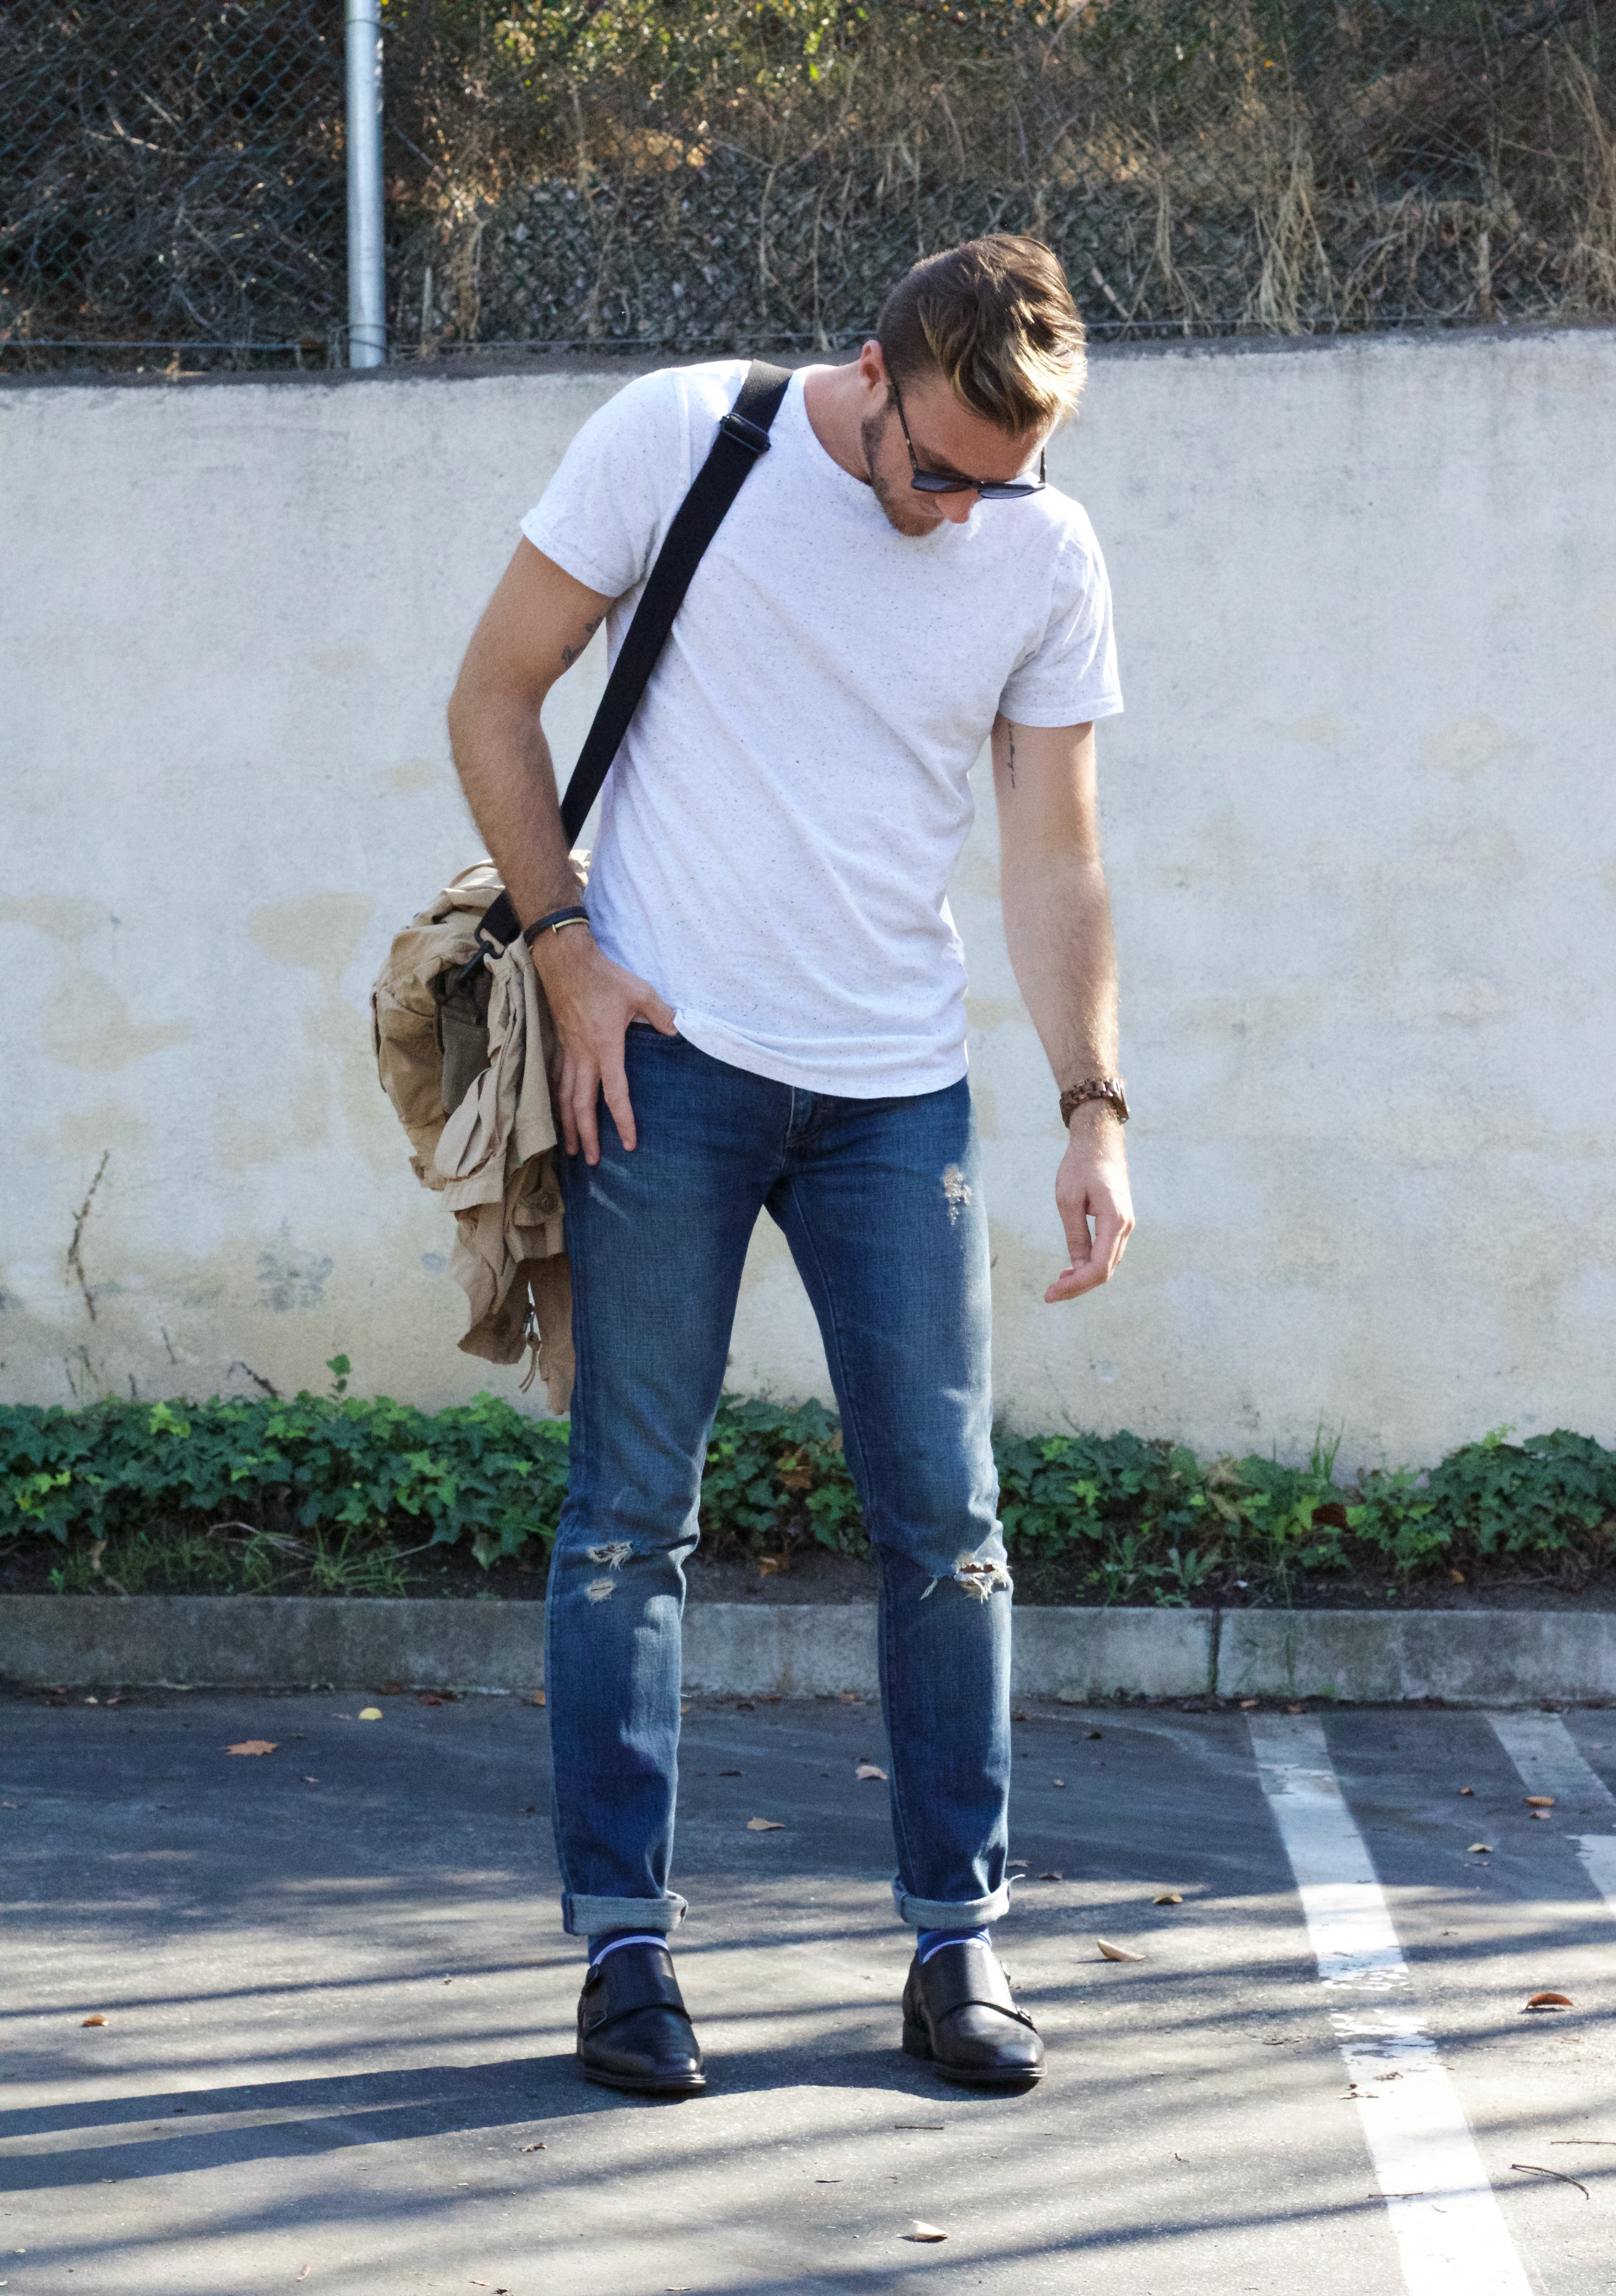 rockport-mens-fall-transition-outfit-11